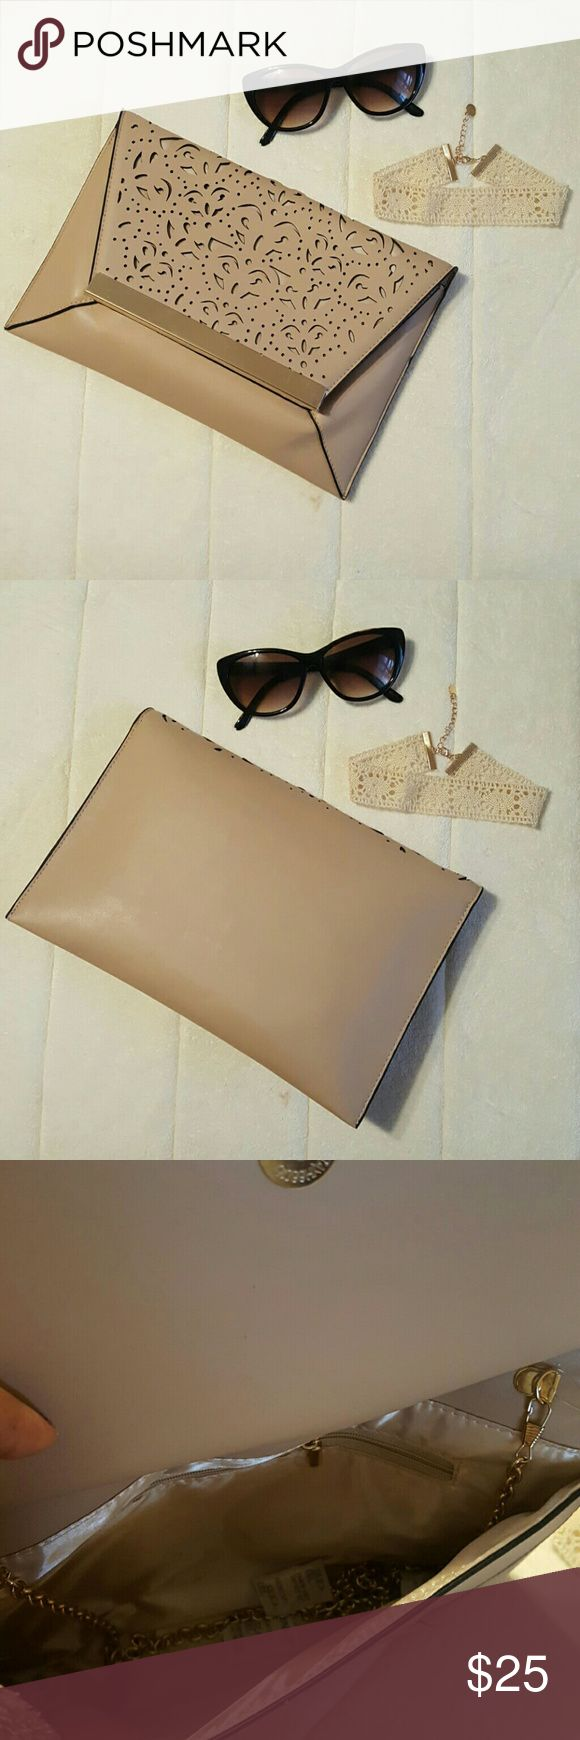 Laser-cut Nude Clutch New with tag laser-cut nude clutch. Bags Clutches & Wristlets